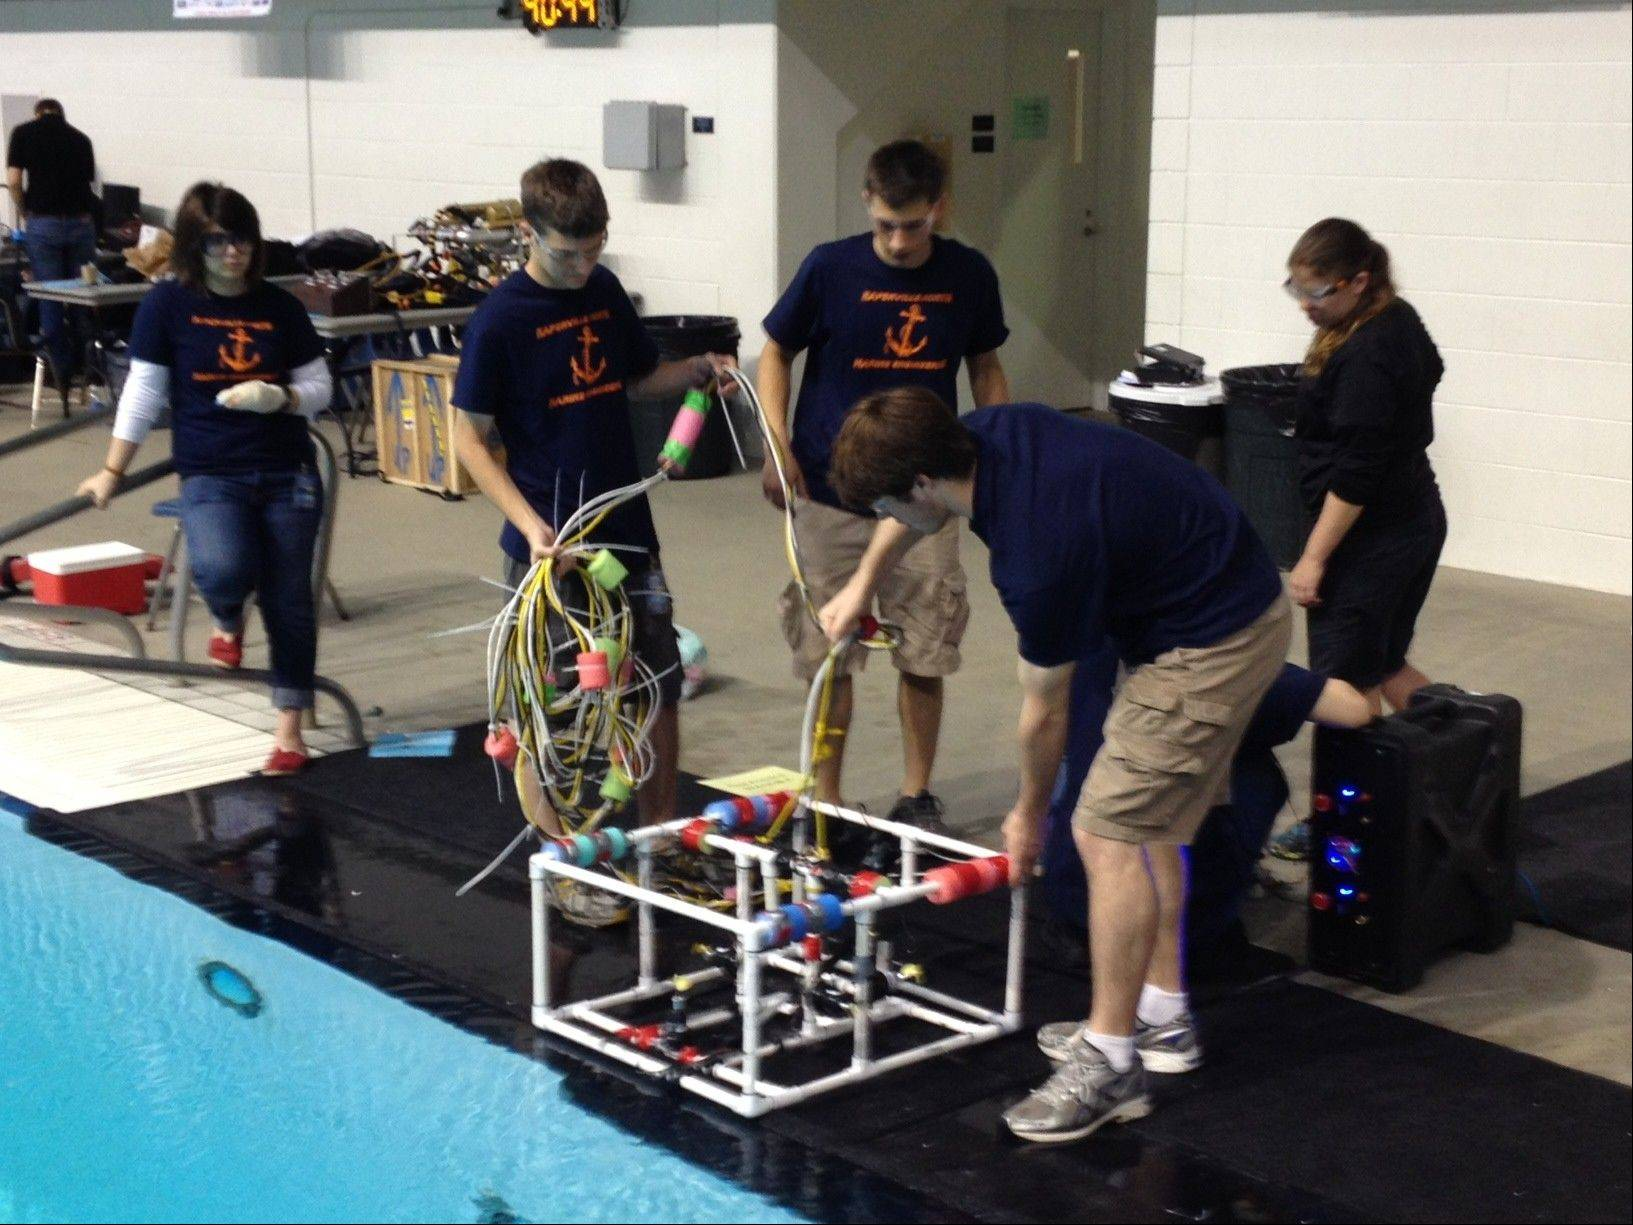 Carissa Cesarotti, Stuart Houston, Isaac Heine, Julie Ozols and Konrad Hausman, all members of Naperville North's marine engineering team, test their underwater remotely operated vehicle in a pool before competing in June in an international competition that mimics an underwater scientific lab. The team placed 19th out of 30 high schools from across the world.